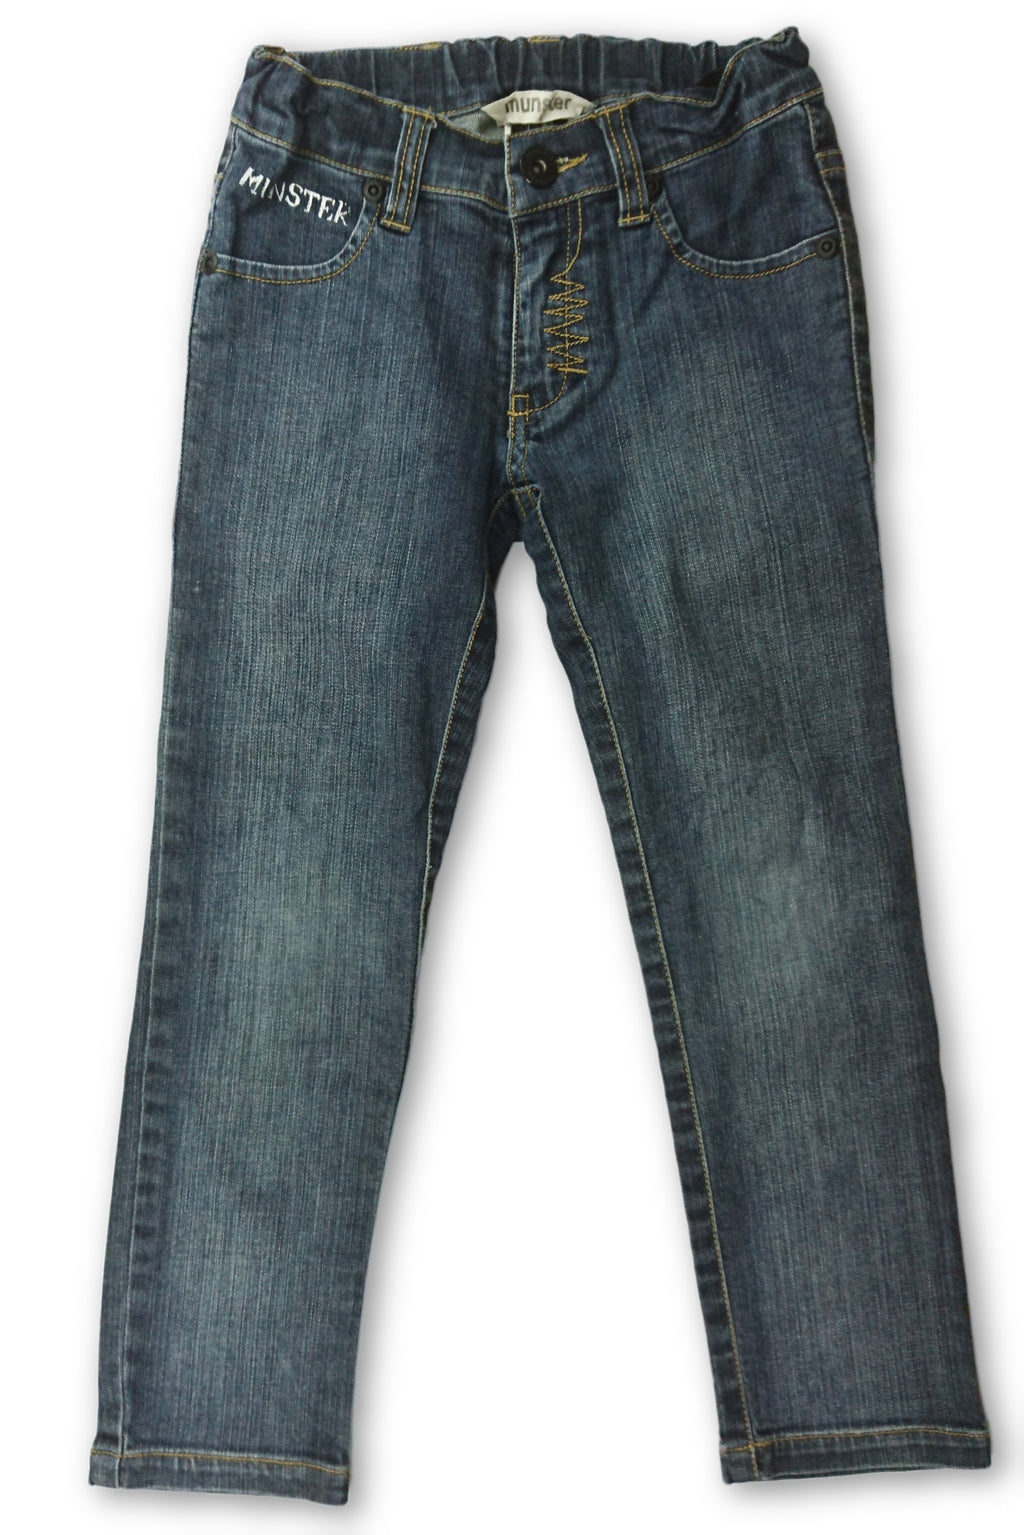 Munster Jeans size 4